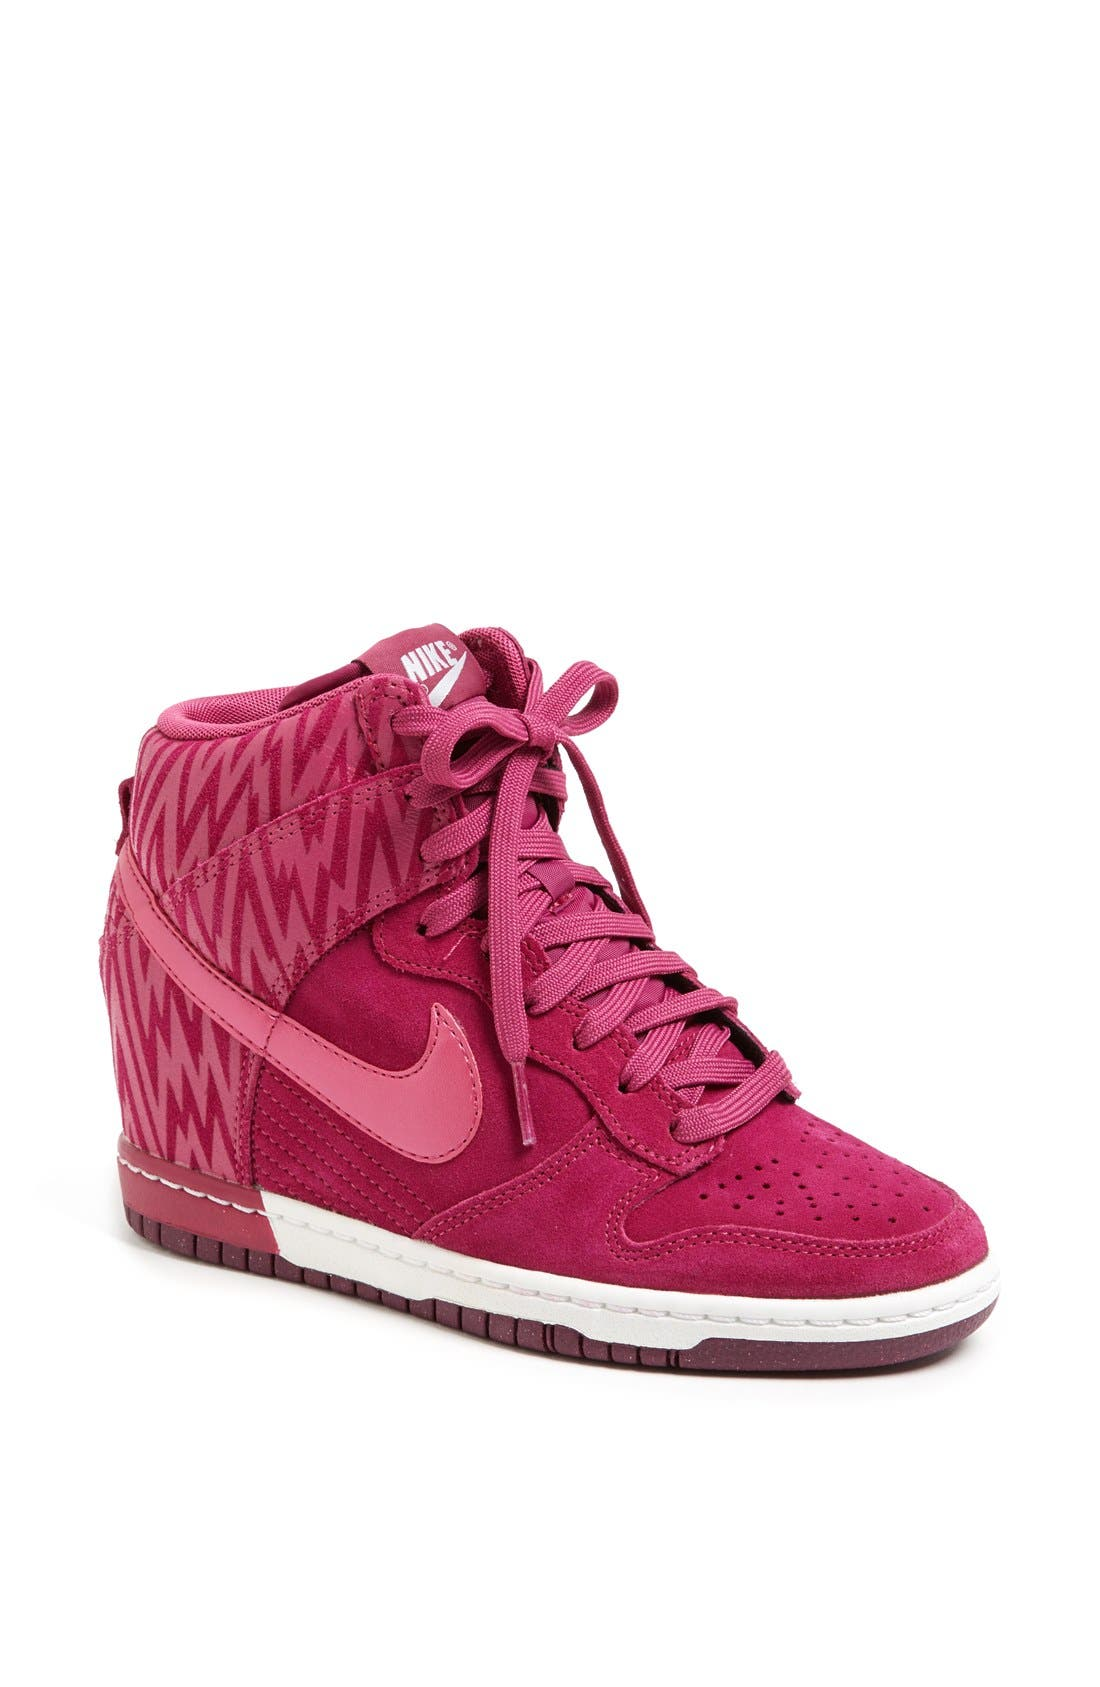 Alternate Image 1 Selected - Nike 'Dunk Sky Hi' Wedge Sneaker (Women)